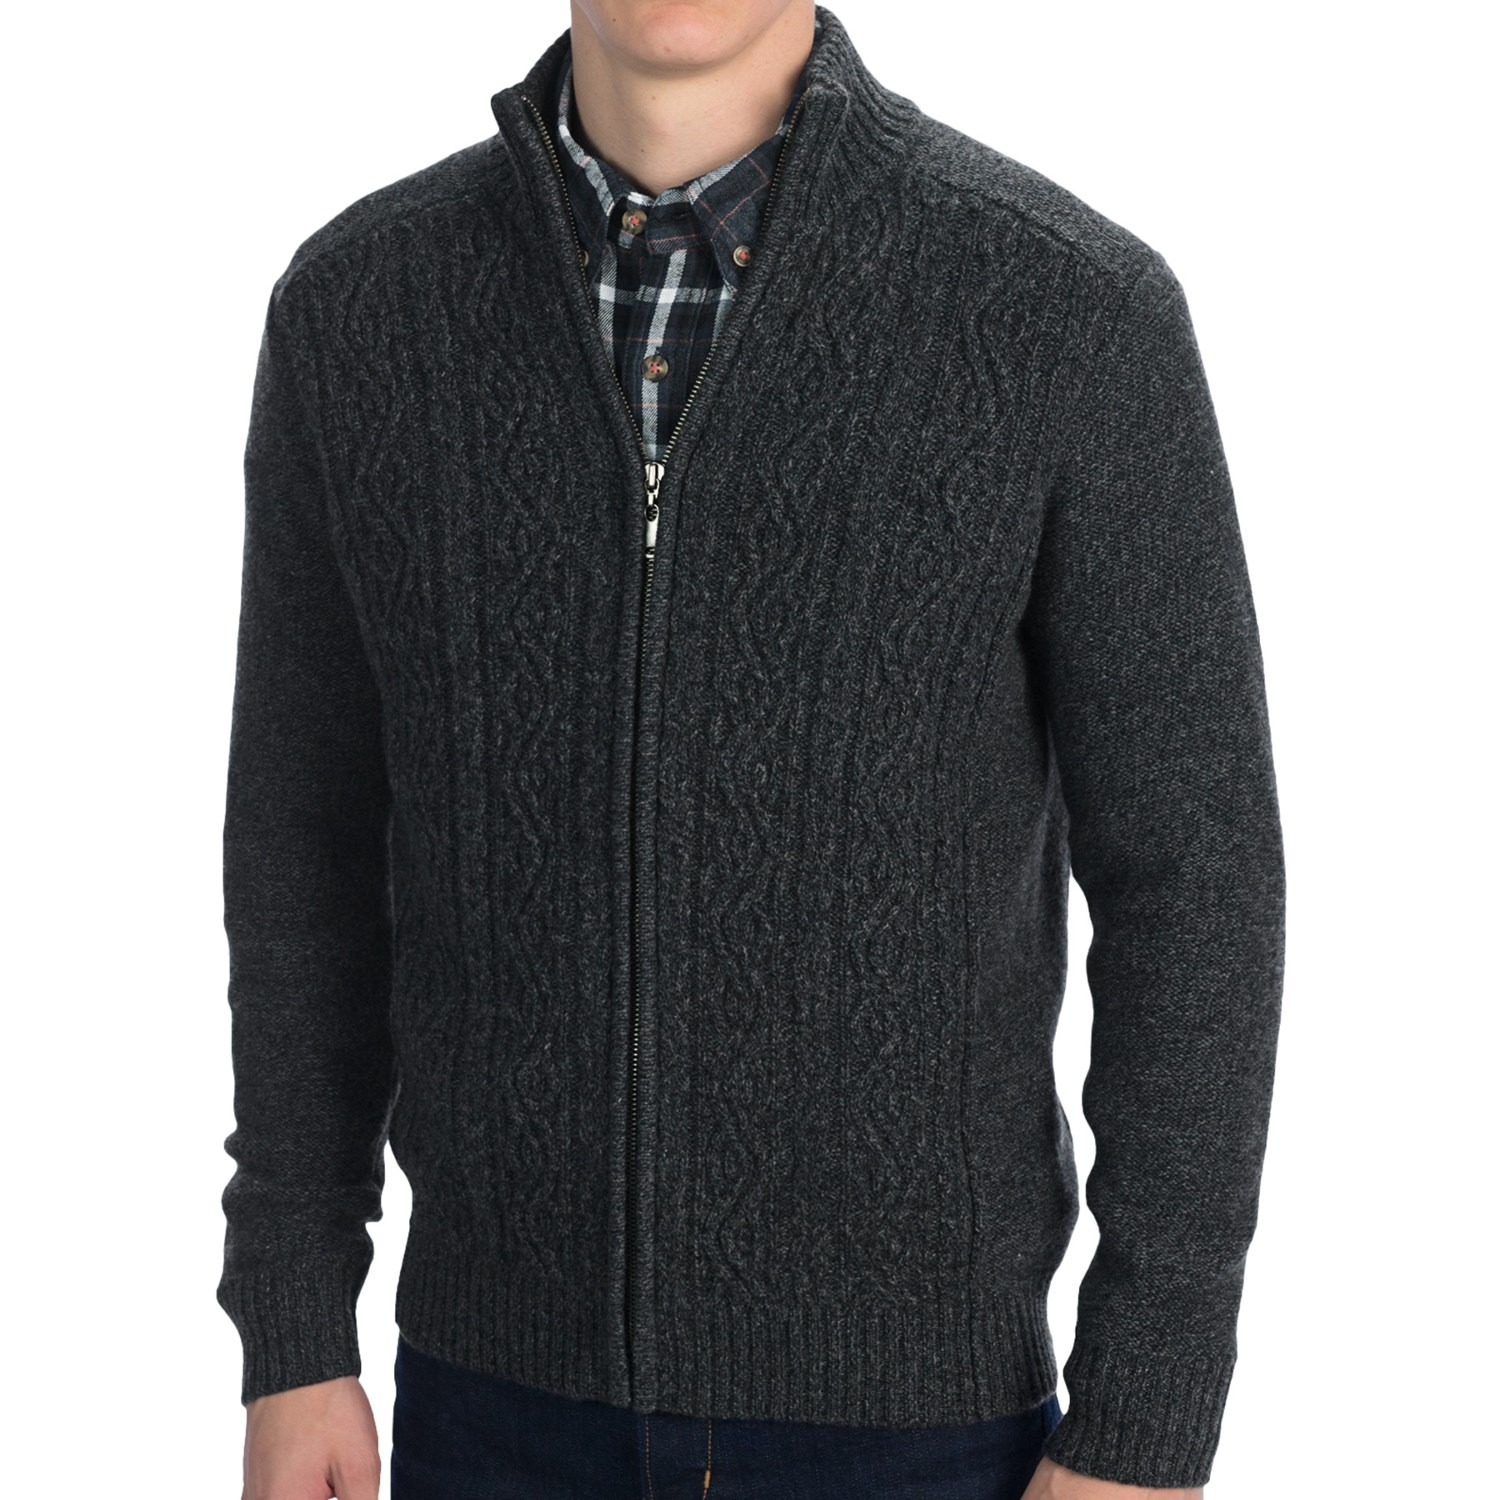 Mens Front Zip Sweater - Cashmere Sweater England